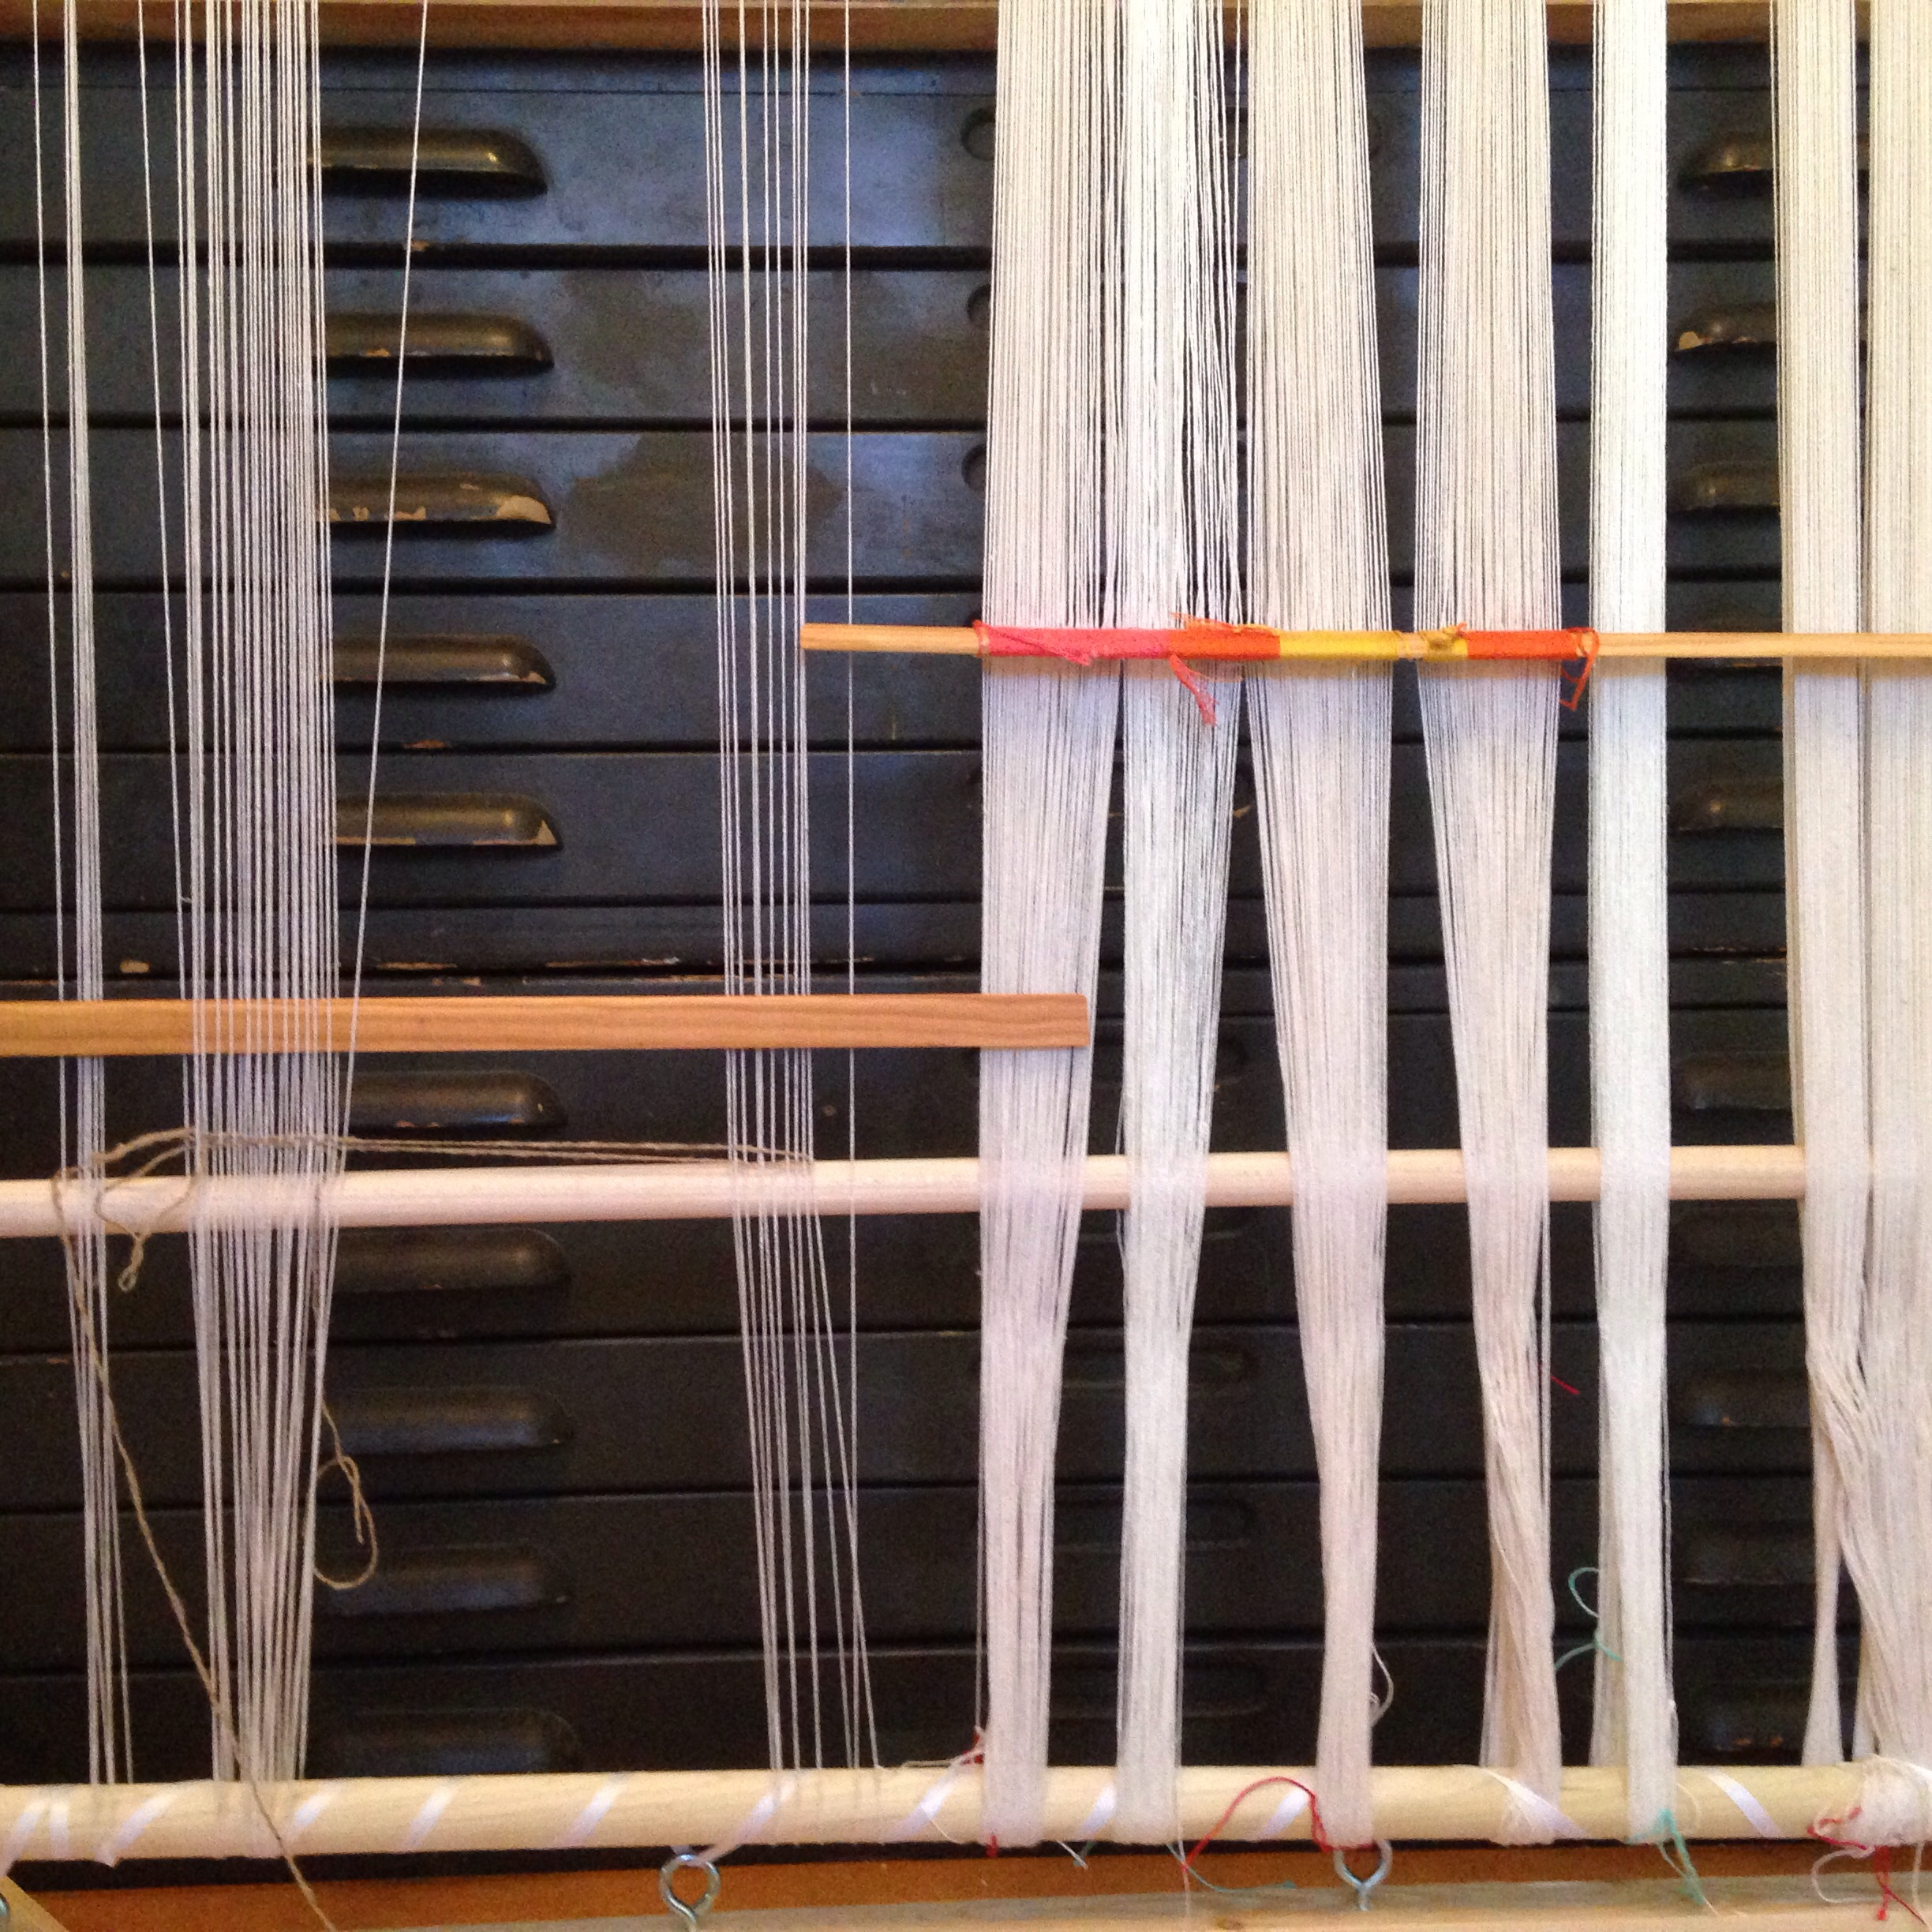 What I learned: the warp on the right, with an intense thread count, is best suited for a floor loom; the warp on the left is better suited for a tapestry loom.